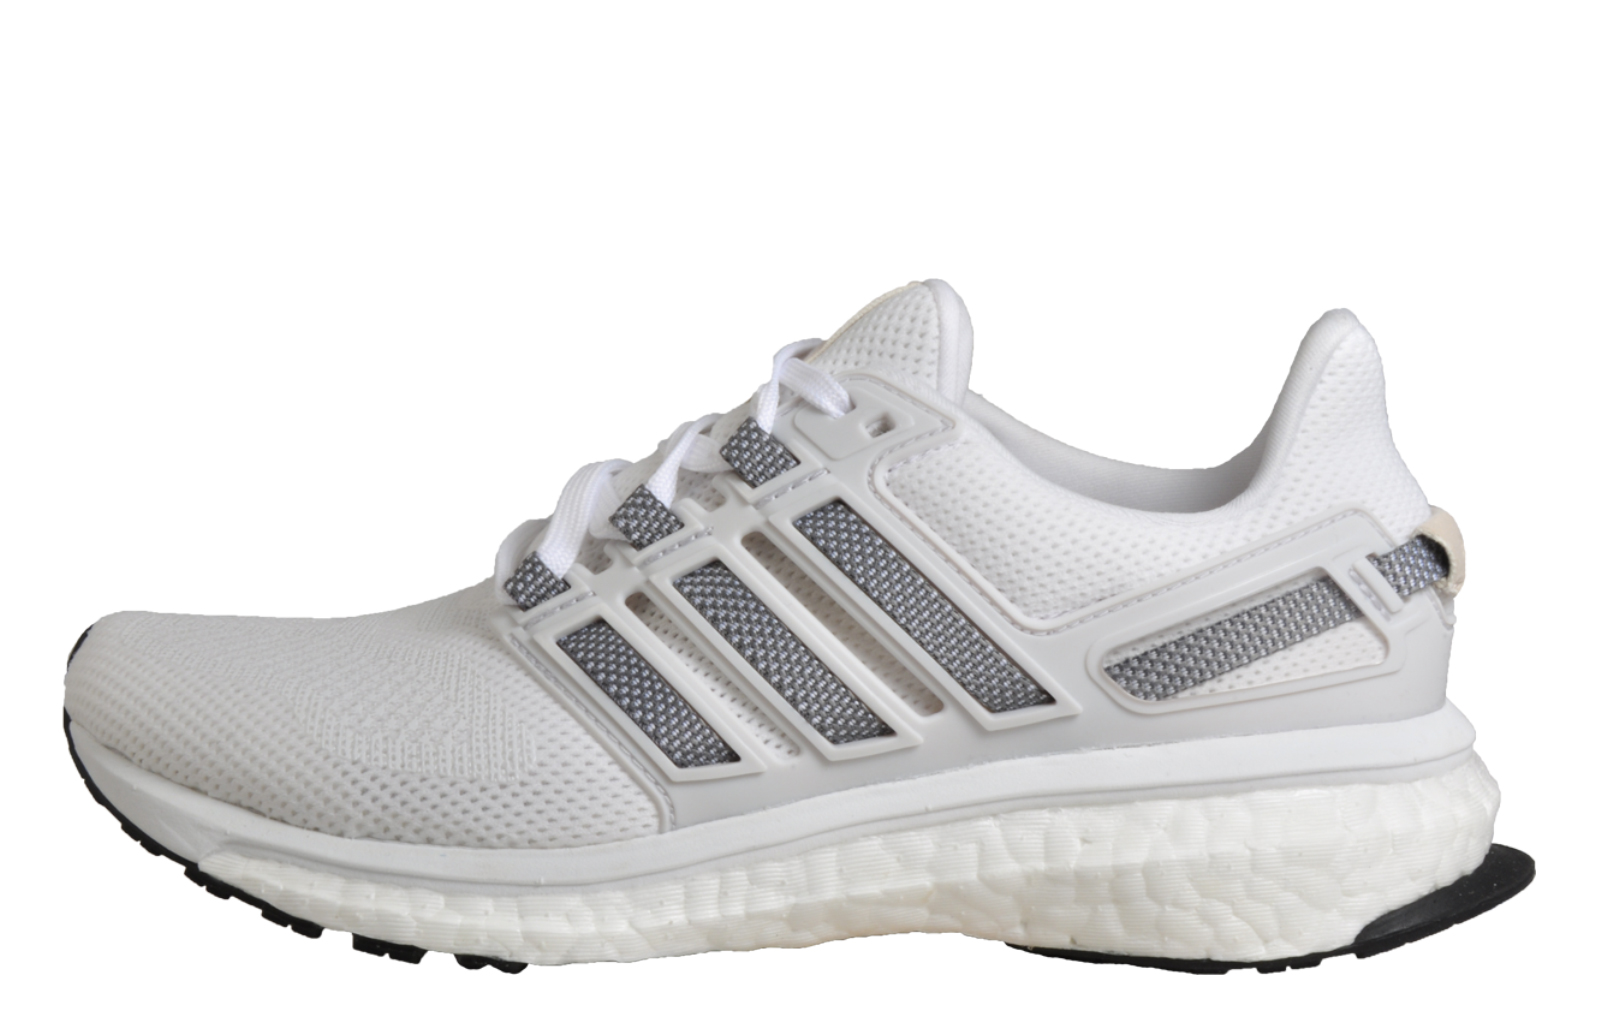 separation shoes 691a2 48aa2 Adidas Energy Boost 3 Premium Women s Performance Running Shoes White